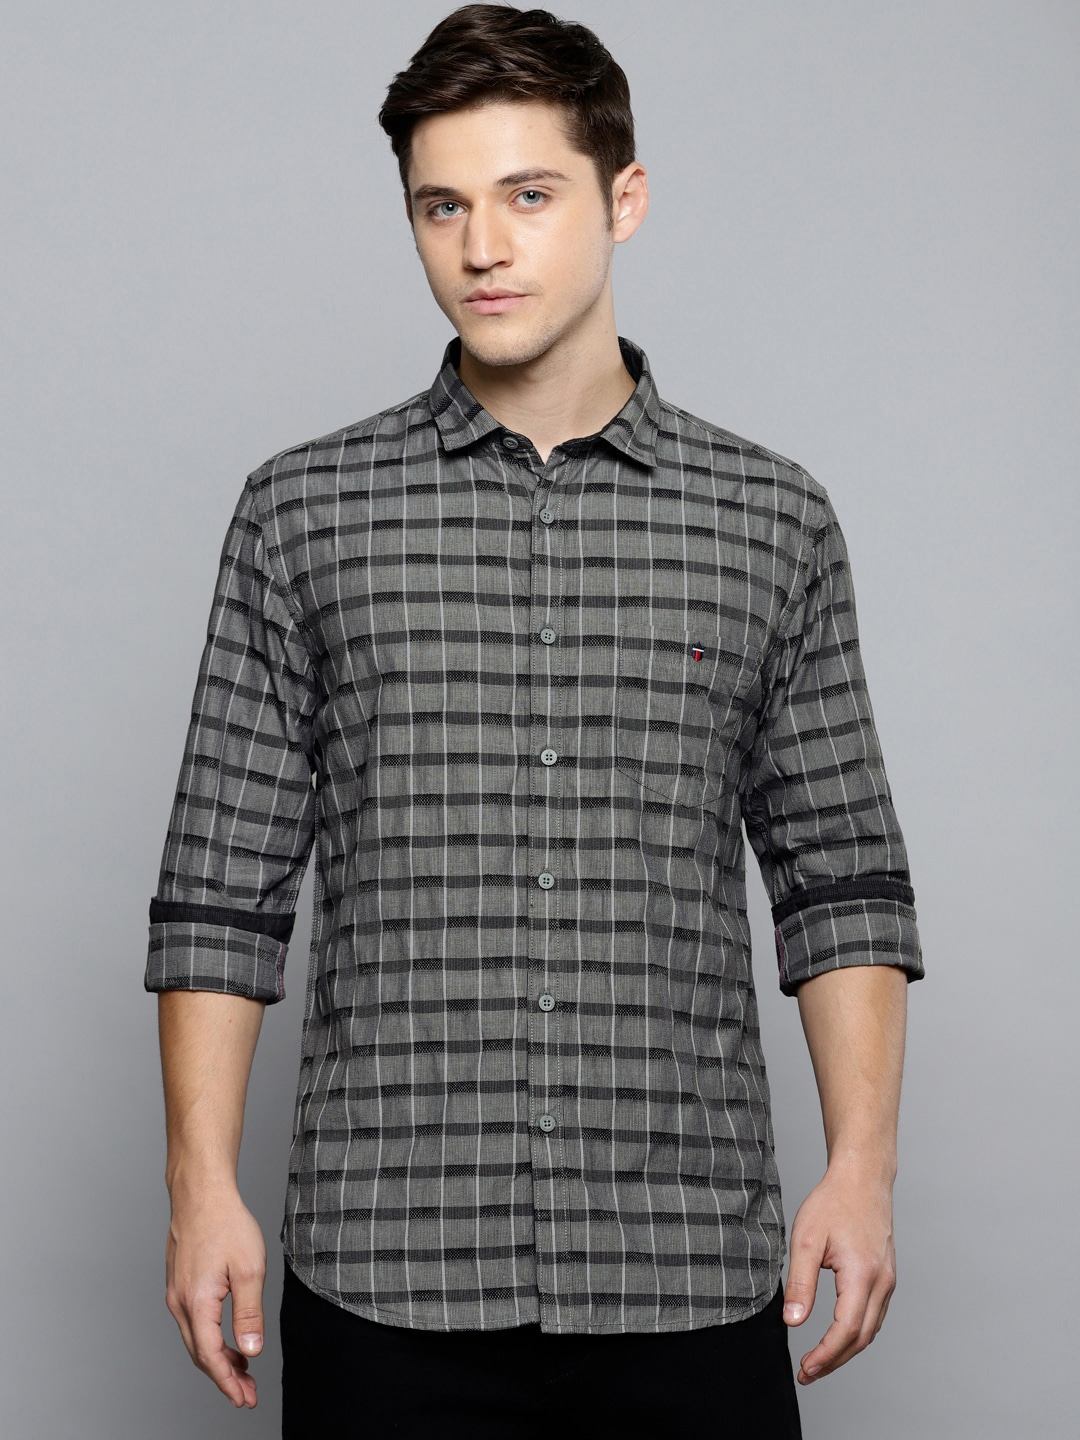 2b11010f0014 Mens Clothing - Buy Clothing for Men Online in India